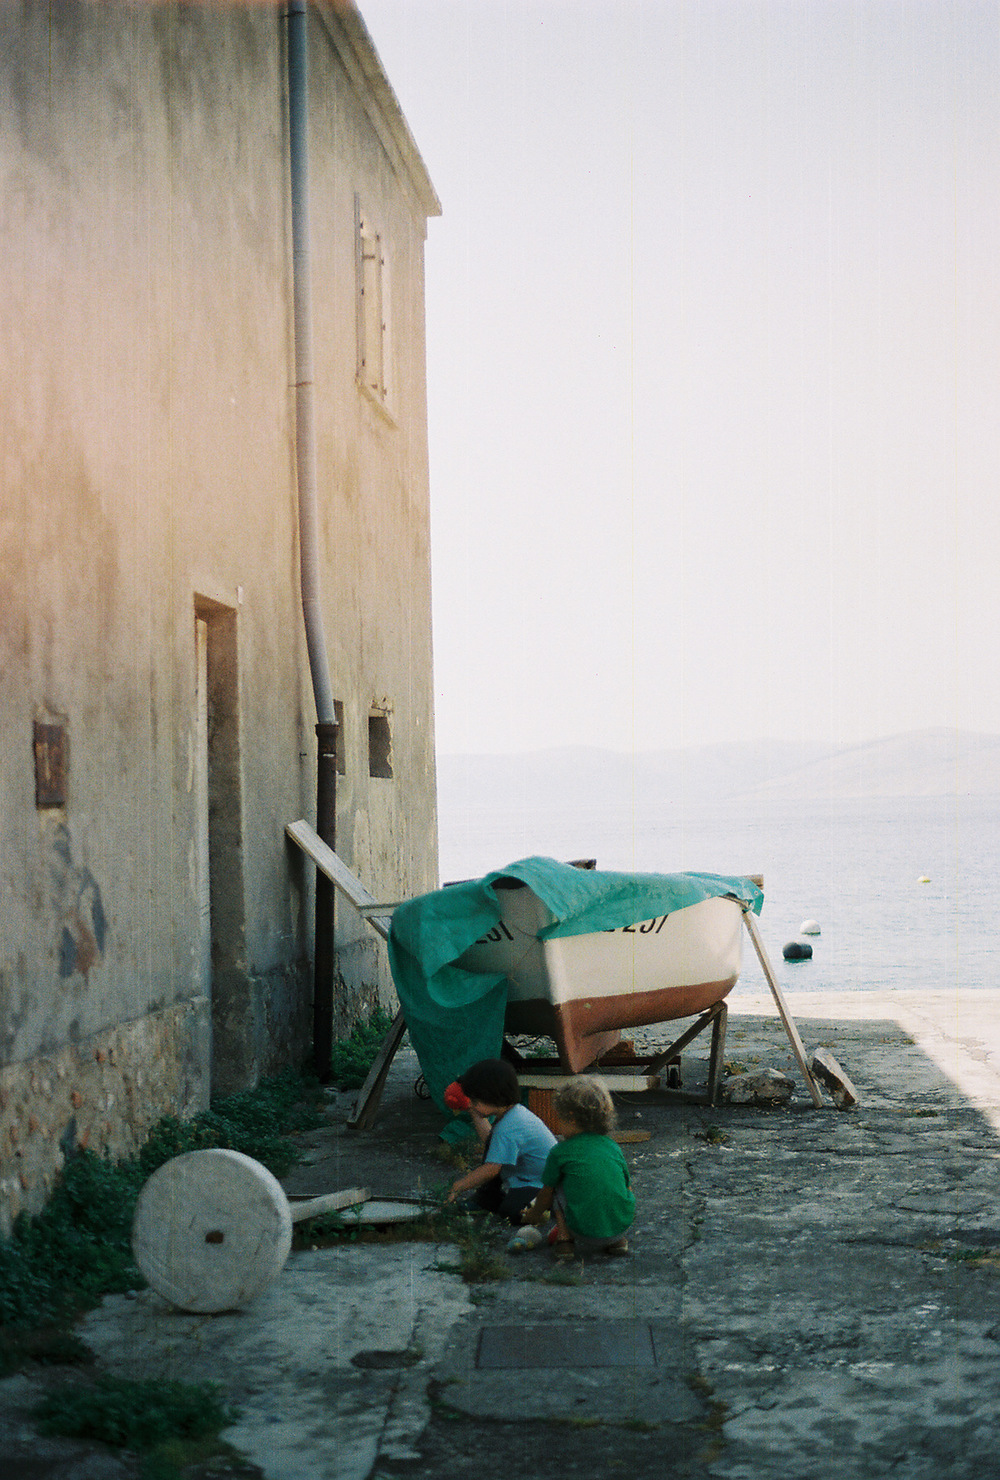 Croatia, 35mm